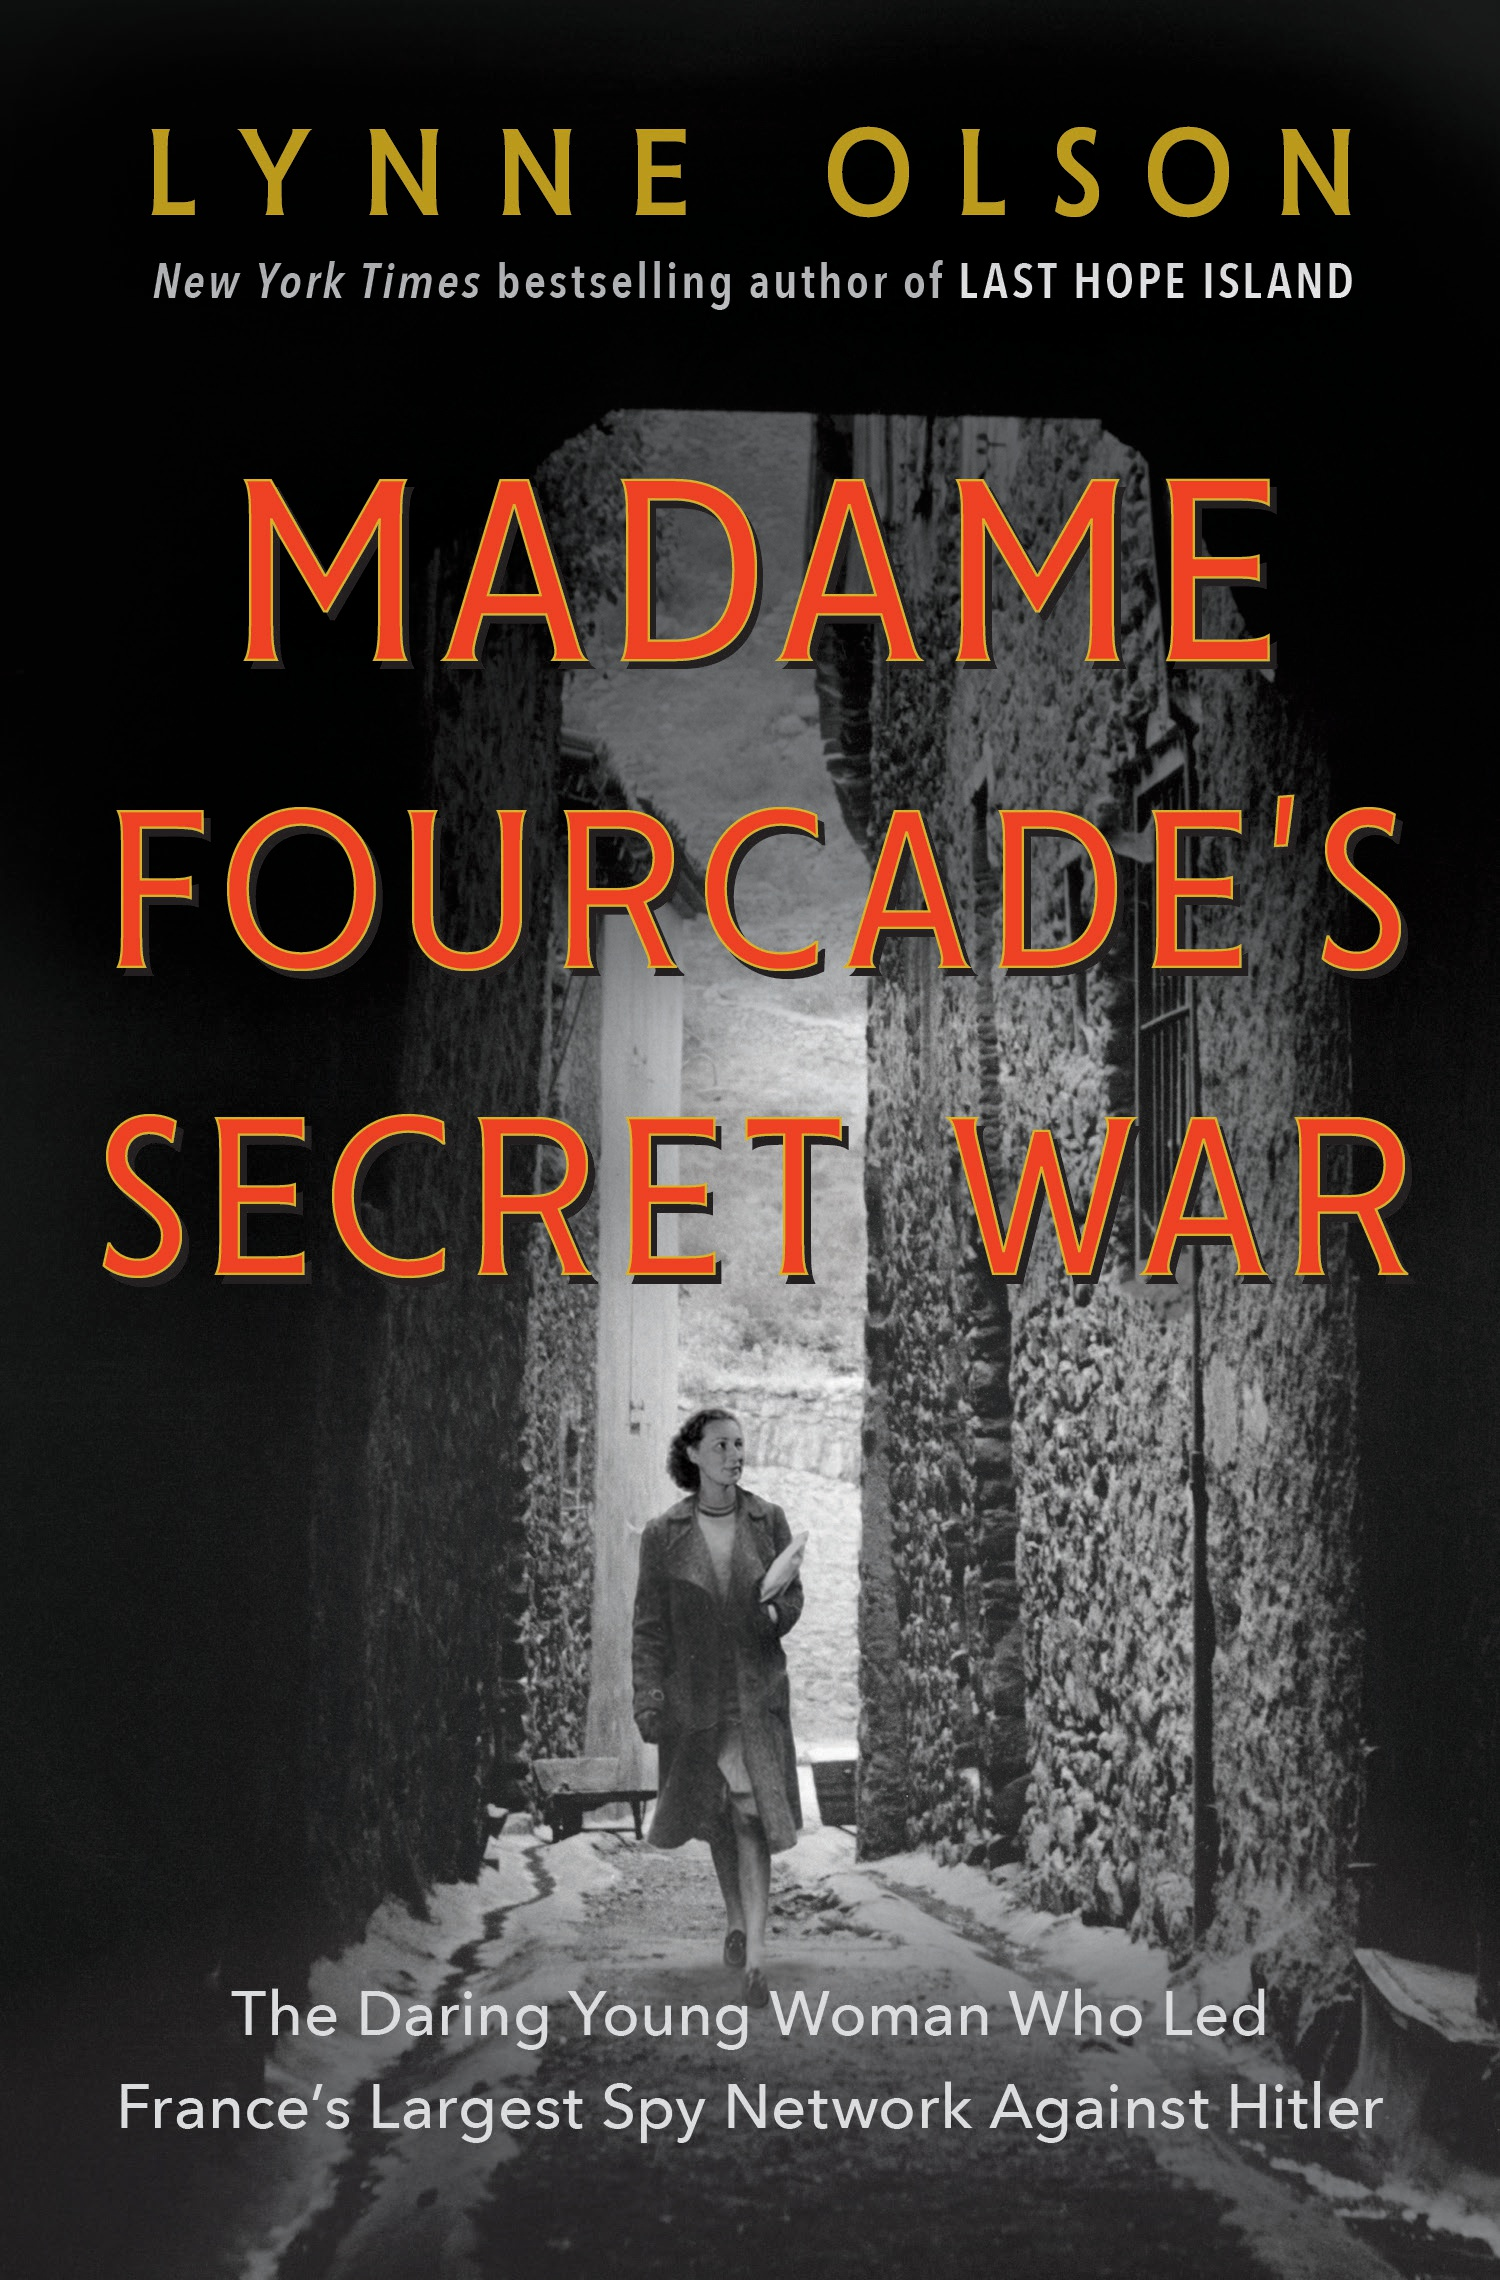 From the New York Times bestselling author of Citizens of London and Last Hope Island comes the dramatic, little-known story of Marie-Madeleine Fourcade, born to privilege and known for her beauty and glamor, who headed the largest and most influential spy network in occupied France during World War II.